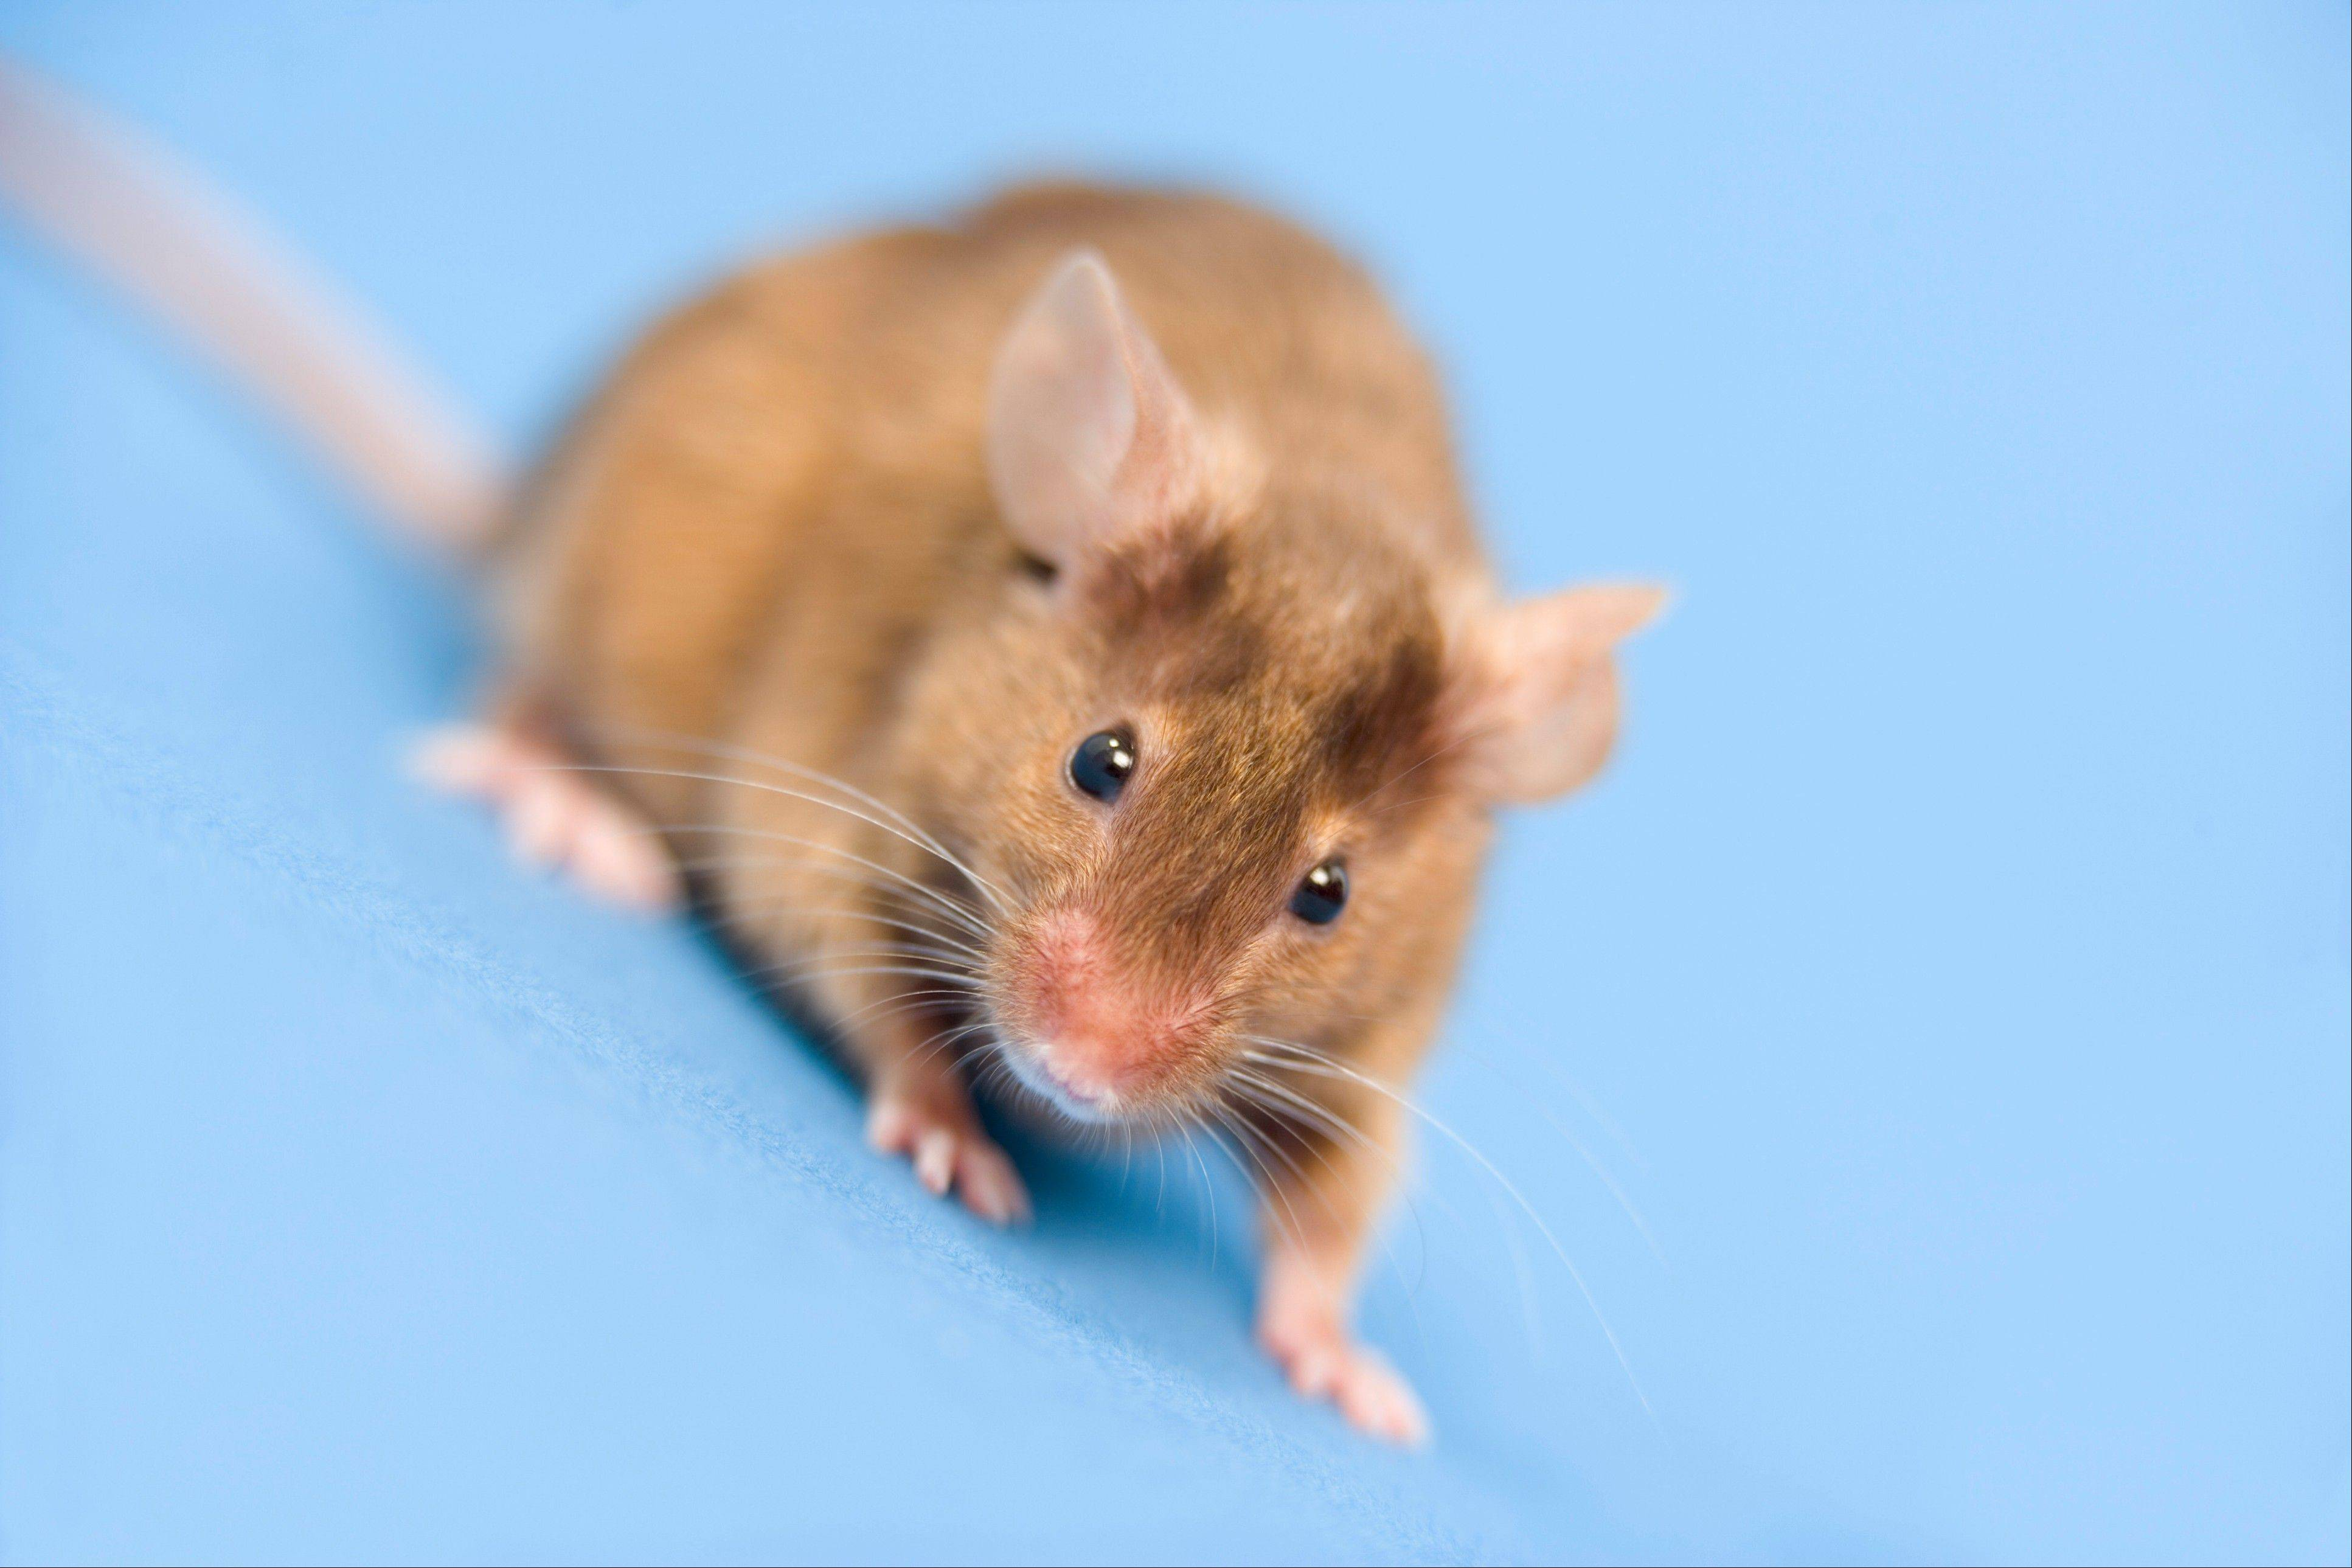 Scientists taught two groups of male mice to fear odors by zapping their feet with an electric shock every time they blew scented air into their cages. The experimental group became afraid of cherry blossoms with a hint of almond, and the control group feared alcohol. The experimental groups' offspring also feared cherry blossom smells from birth.